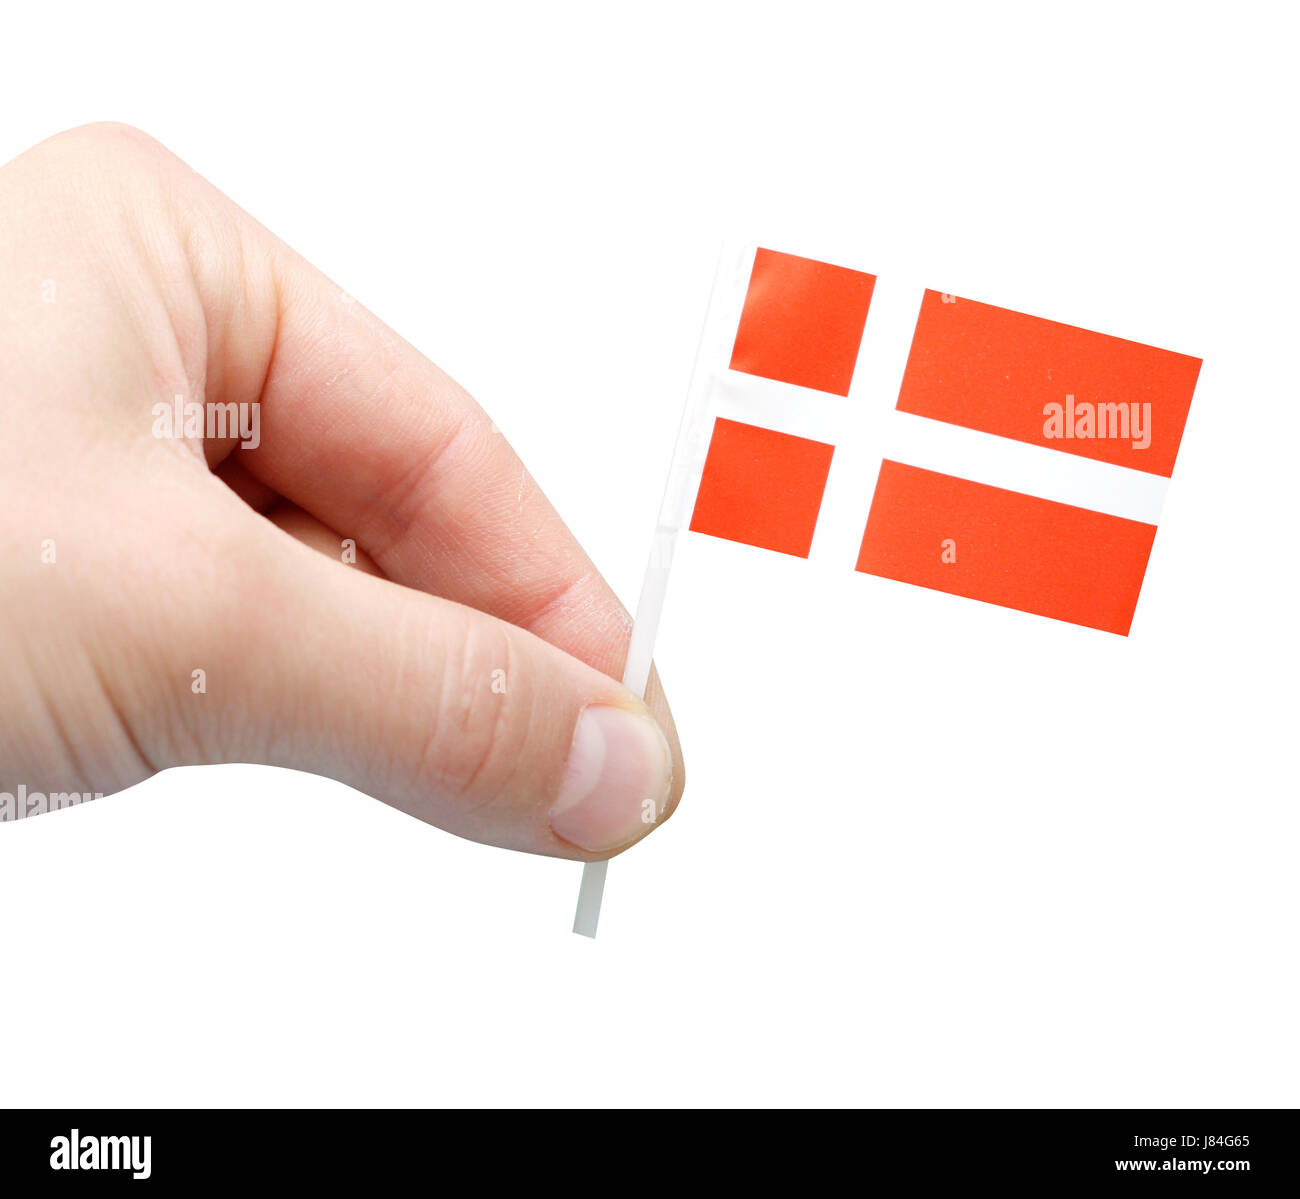 hand hands denmark small tiny little short flag miniature possession holding - Stock Image